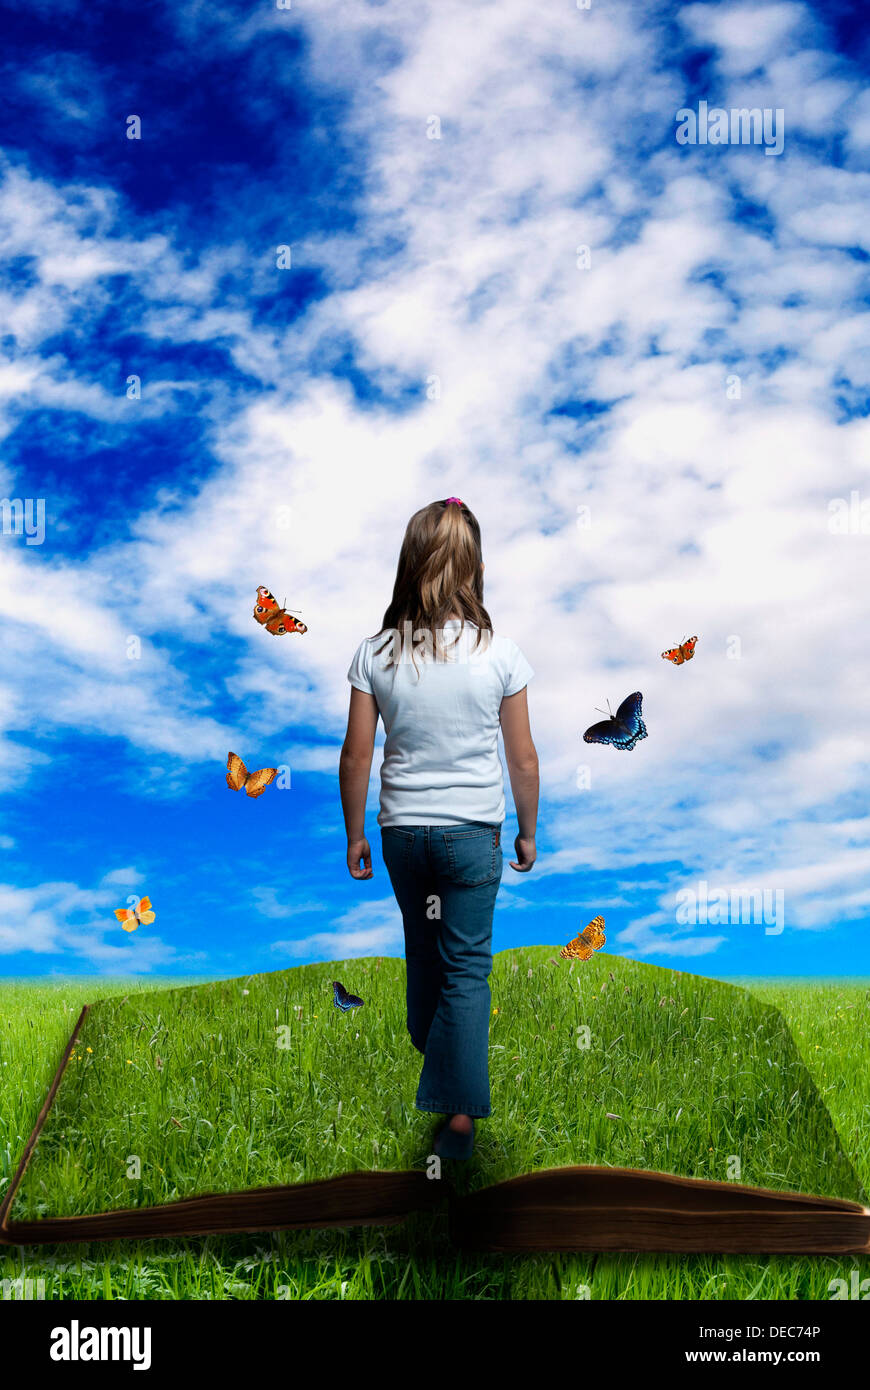 girl walking on a green book surrounded by butterflies, imagination, dream and creativity concept - Stock Image